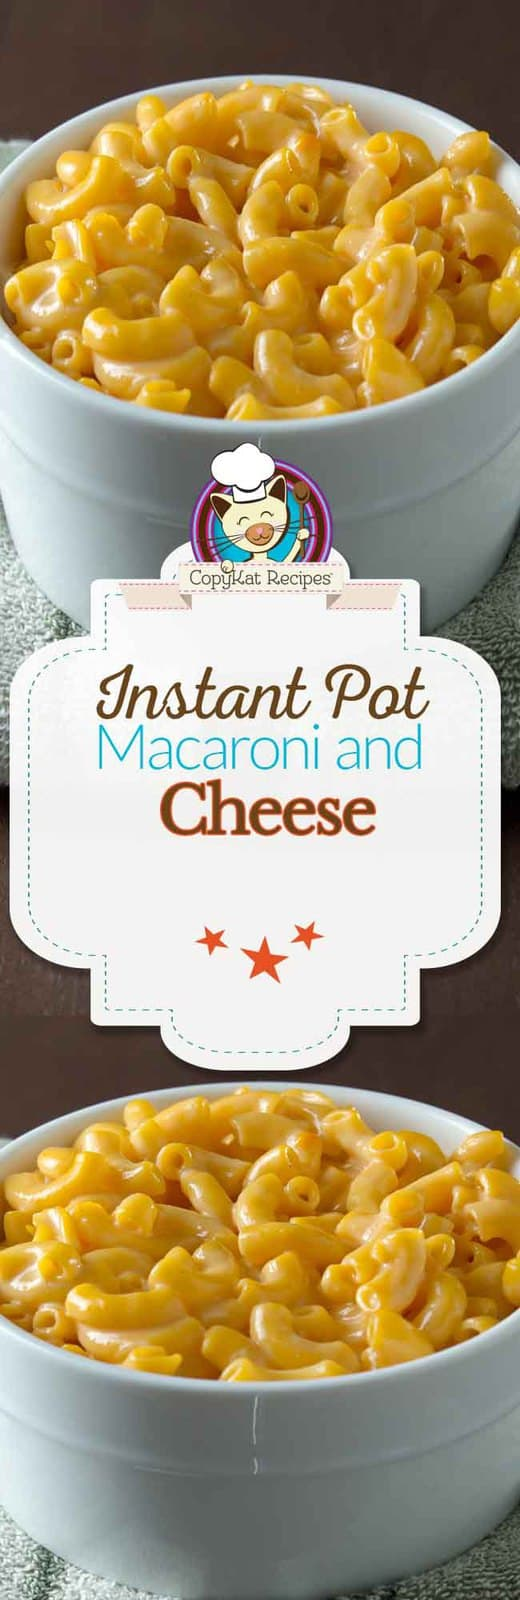 Instant Pot Macaroni and Cheese Long